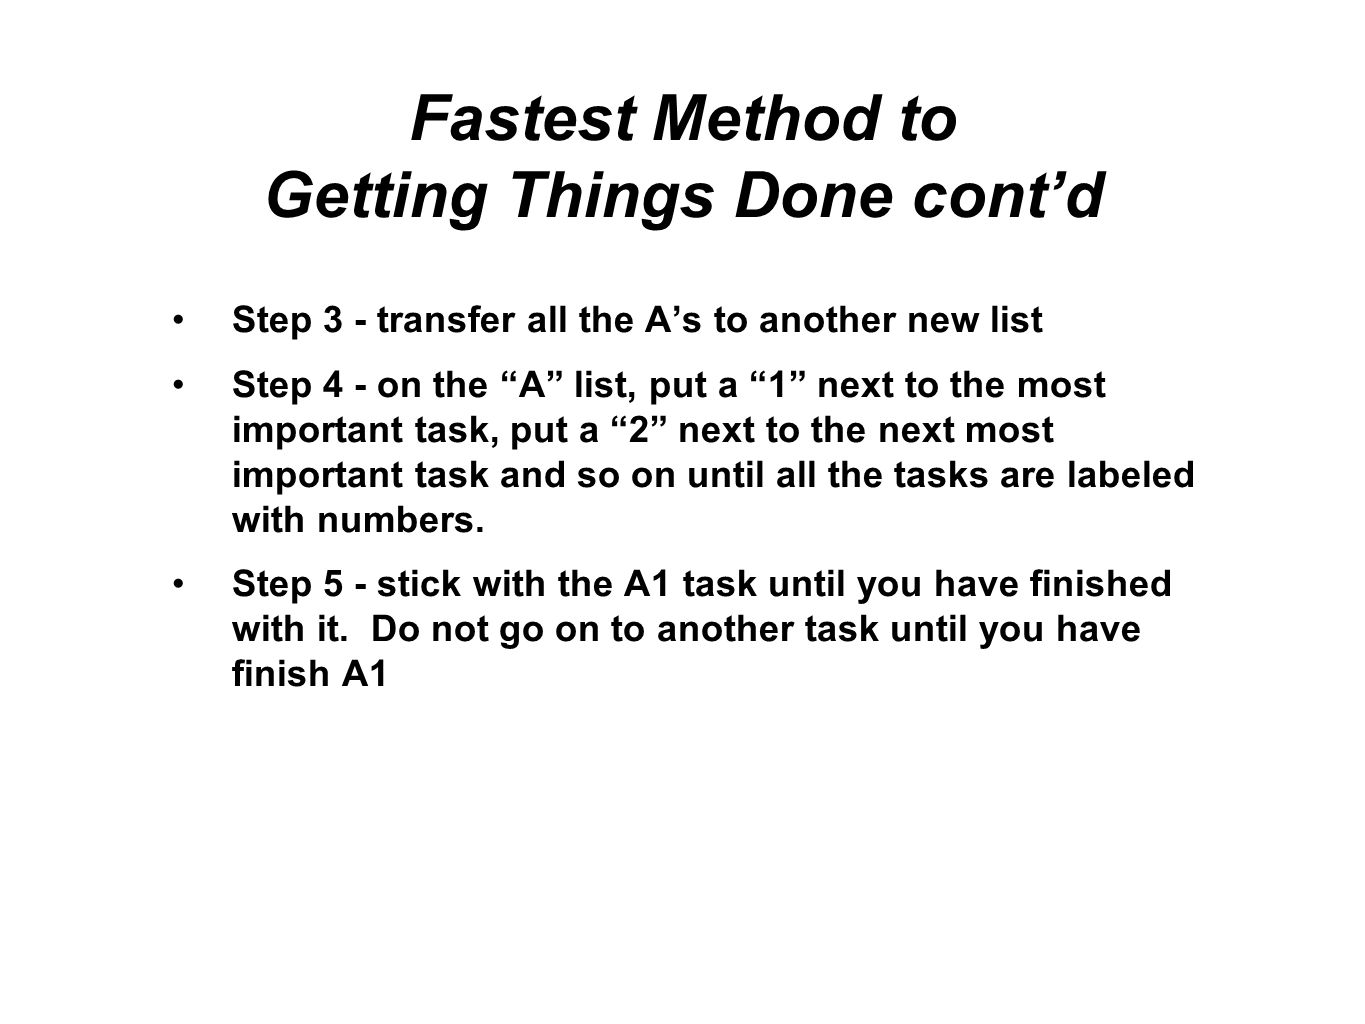 Fastest Method to Getting Things Done contd Steps 6 to n - do tasks A3 to An in order, stick with each task until it is done Step n+1 - when all the A tasks are done, go on to the B tasks using the same method Step n+2 - when all the A and B tasks are done, you are done